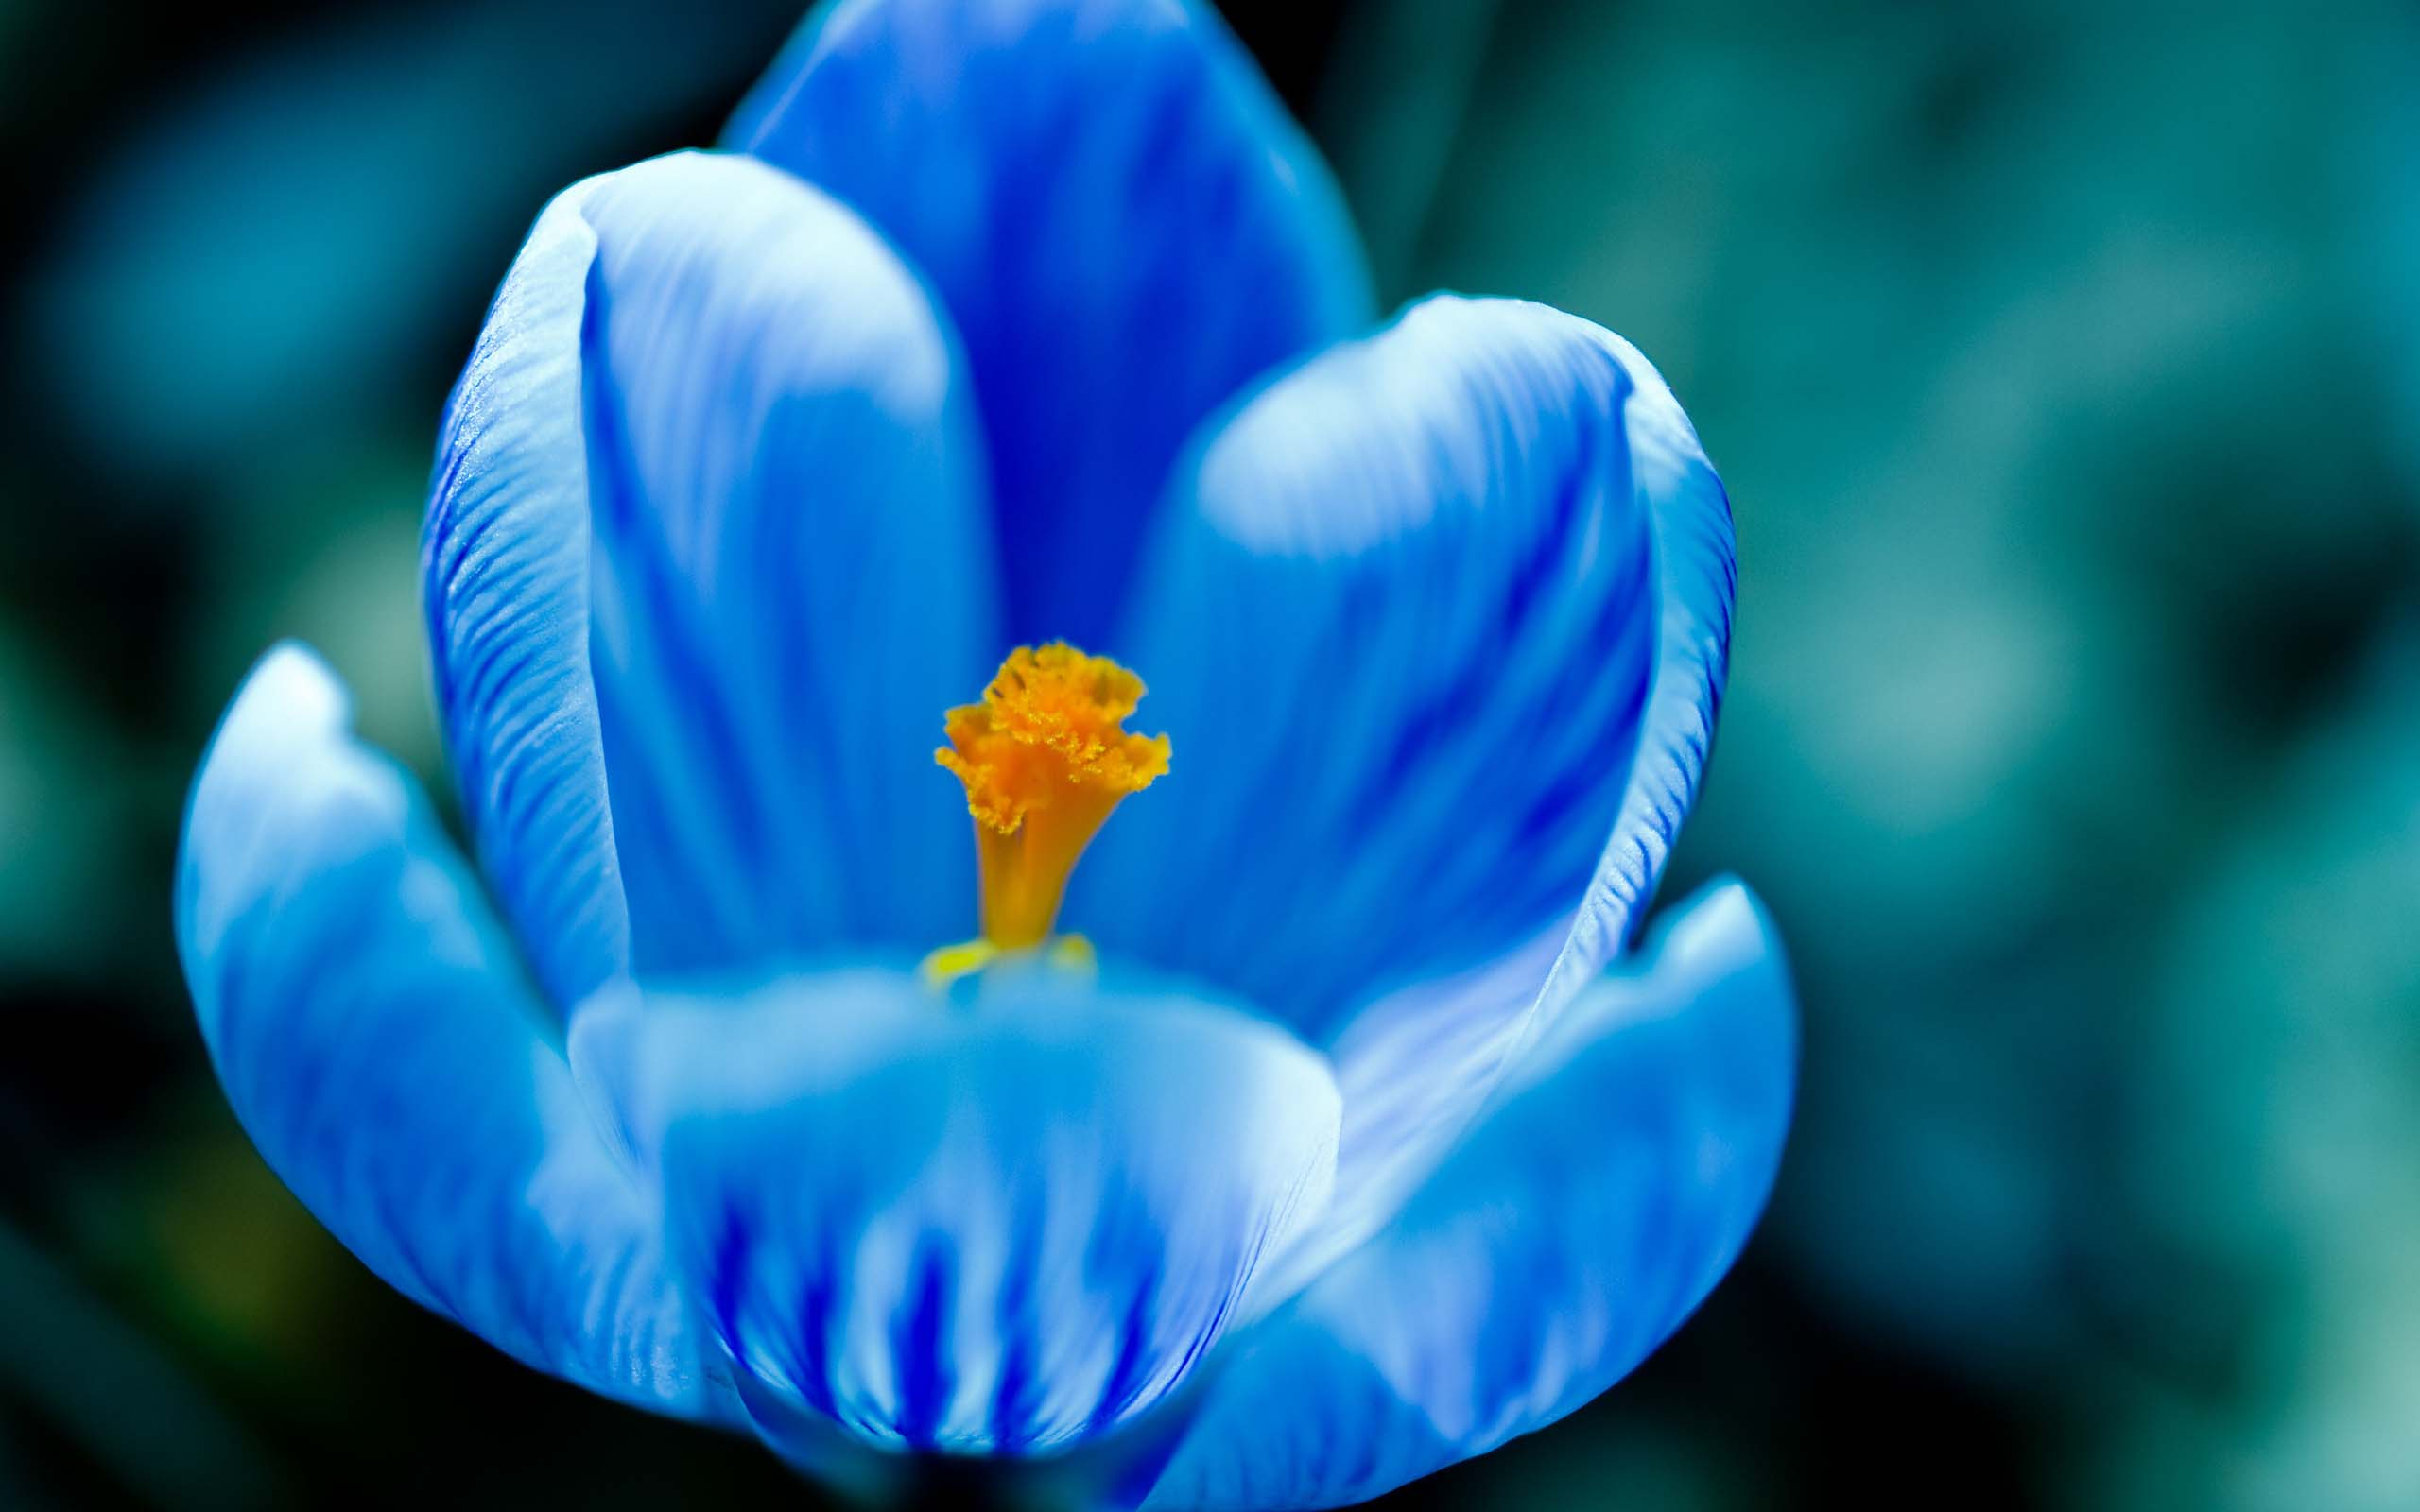 mothers day beautiful flower blue tulip nice images free